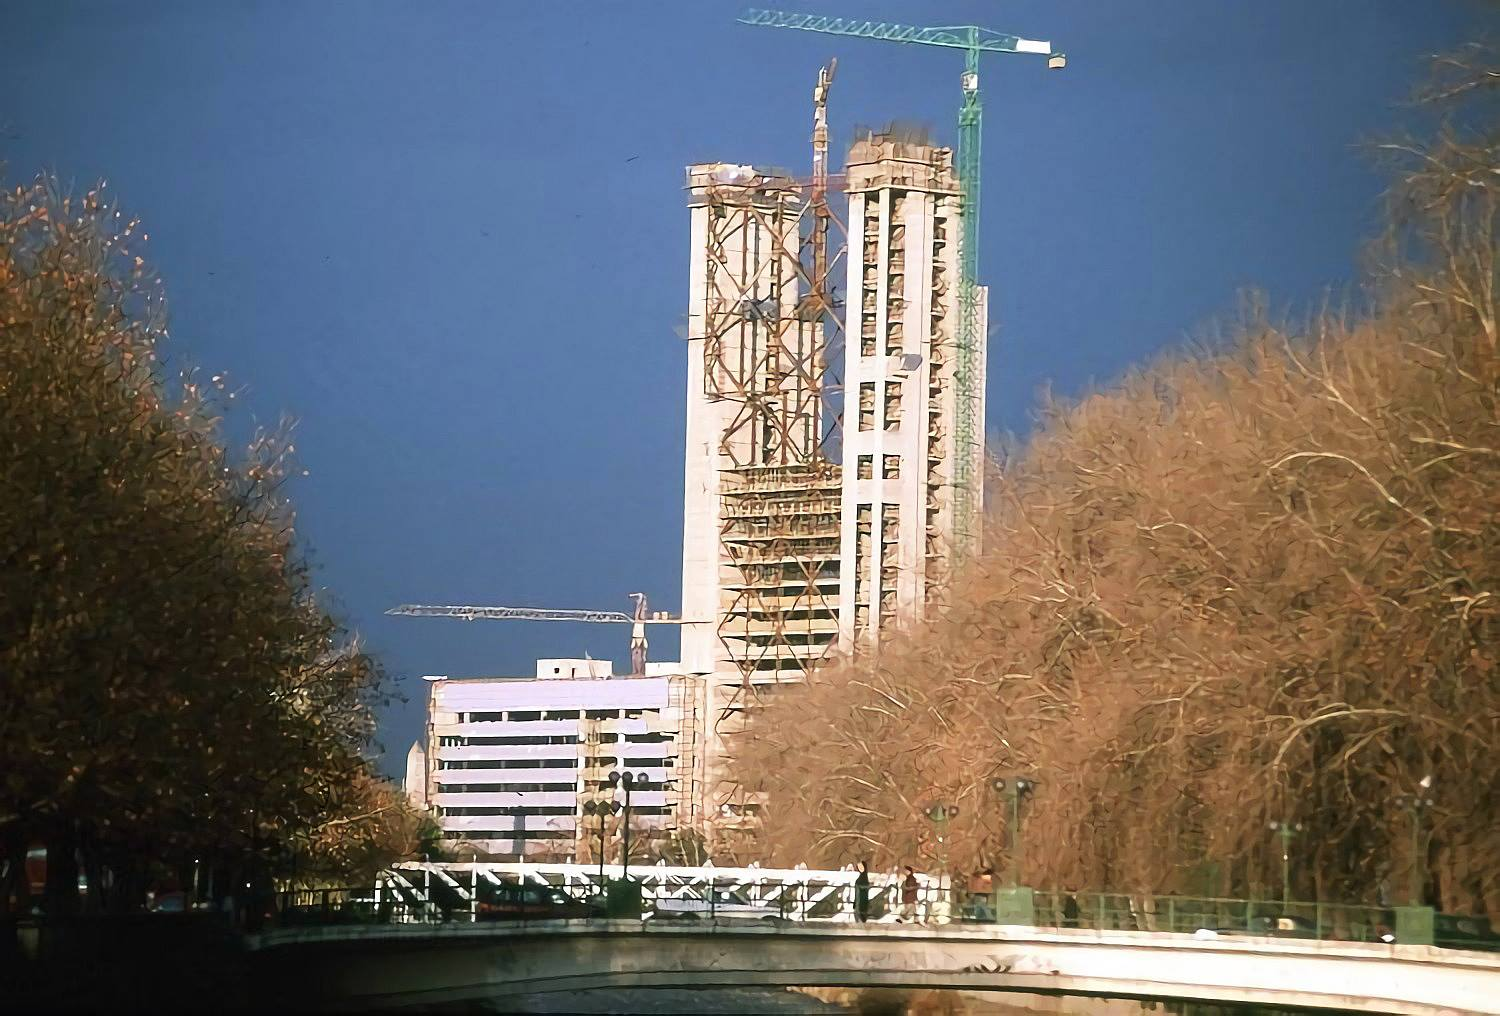 Enterreno - Fotos históricas de chile - fotos antiguas de Chile - Construcción de torre en 1995